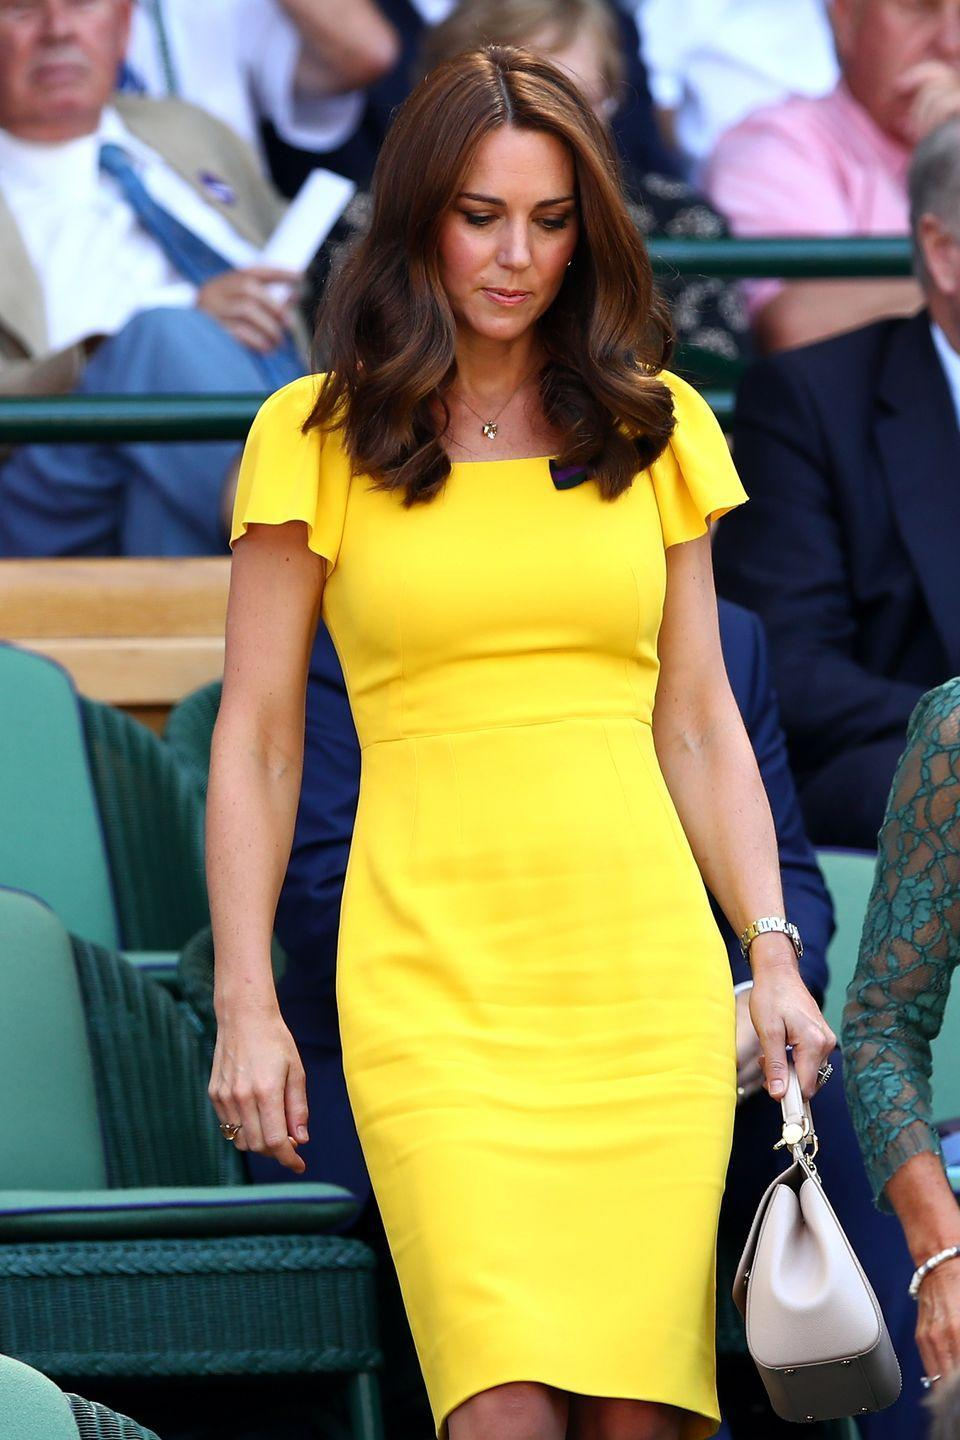 <p><strong>2018</strong> The Duchess of Cambridge made a sunny appearance in a bright yellow Dolce & Gabbana dress.</p>